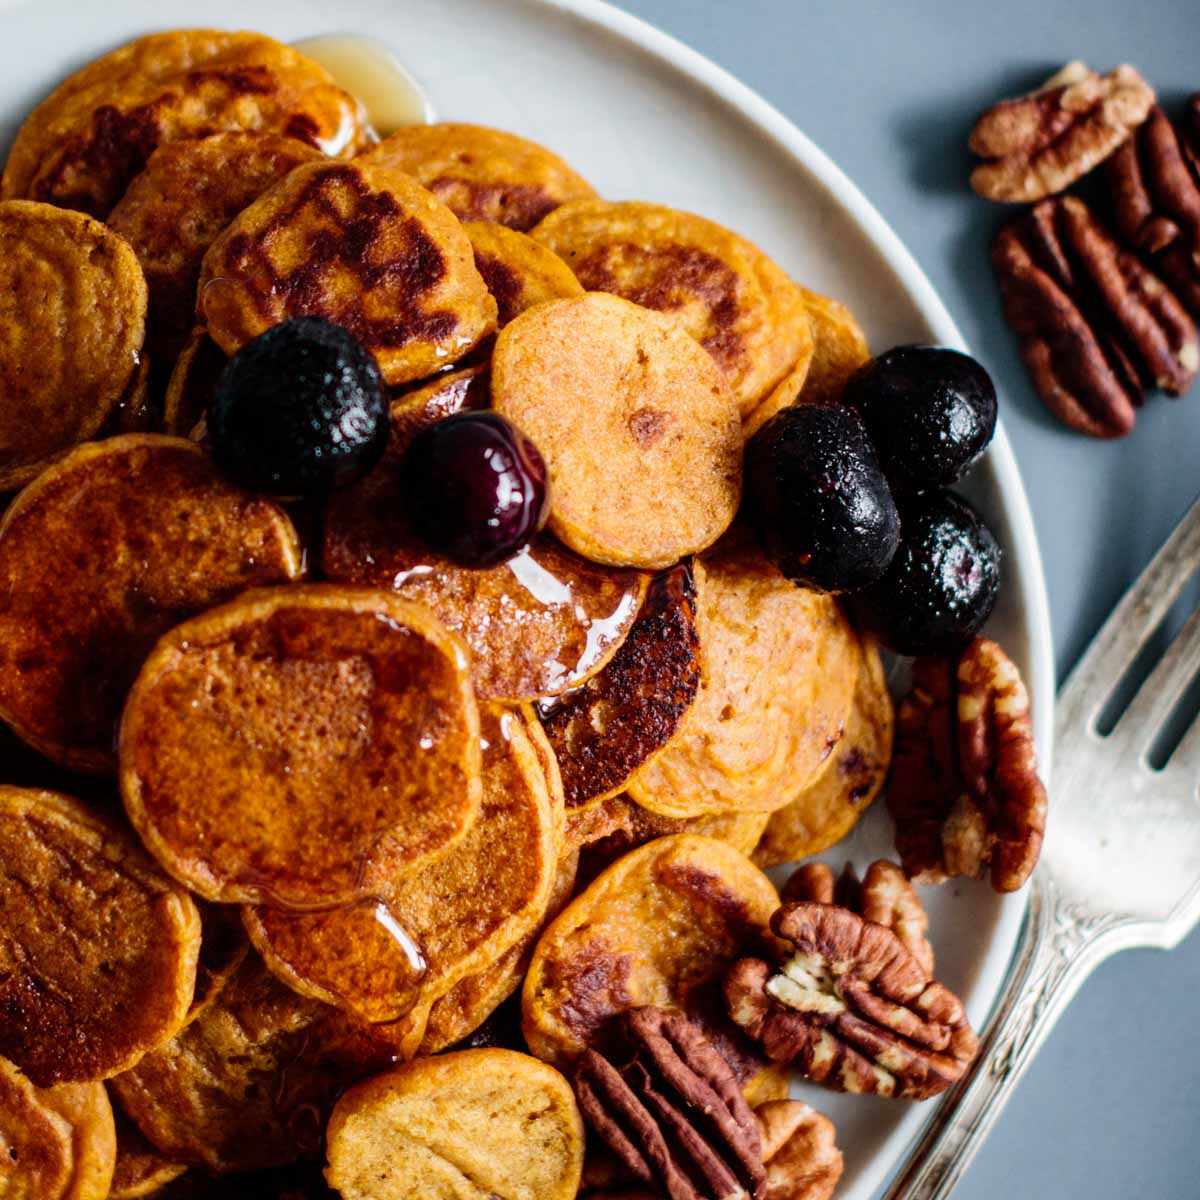 half of a plate full with sourdough pumpkin pancake cereal, pecan, maple syrup and blueberries, fork on the side.